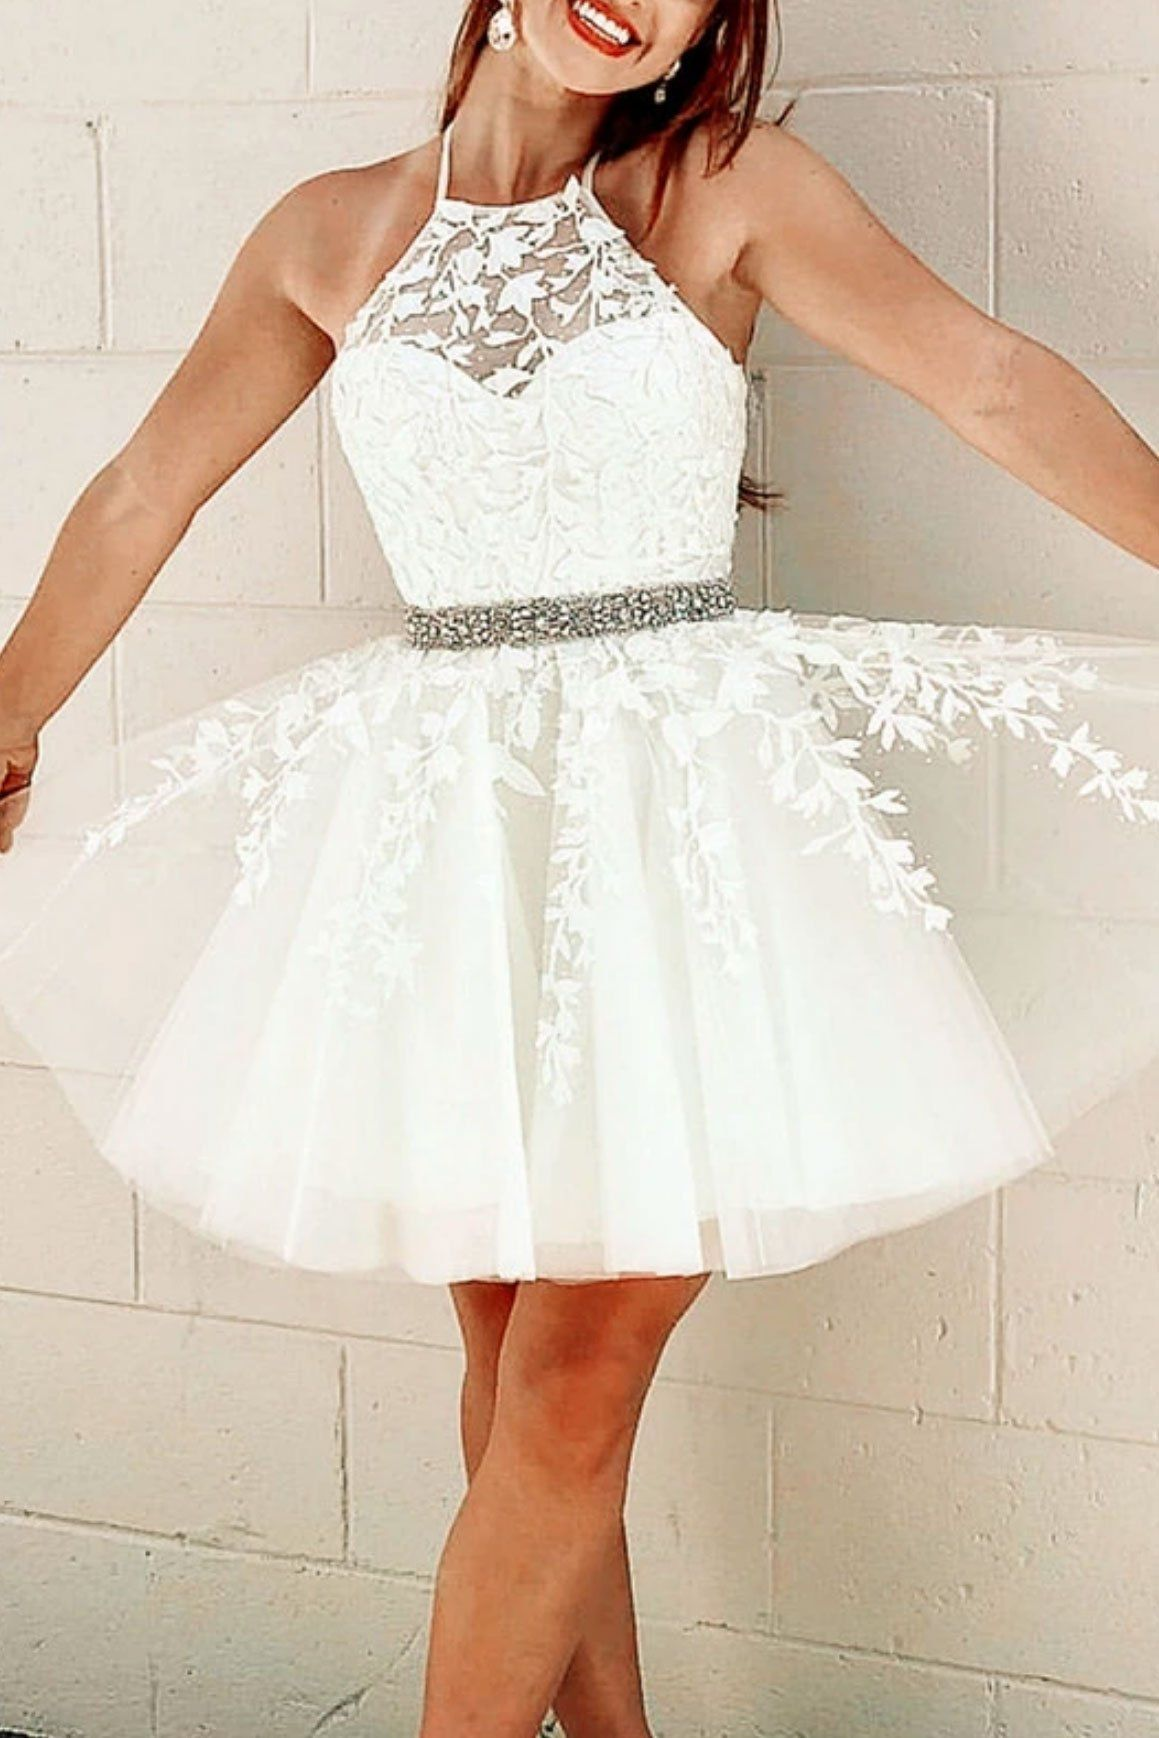 Elegant Aline Ivory Spaghetti Straps Lace Pleated Homecoming Dress Hd3064 Lace Homecoming Dresses Short Homecoming Dresses Short Tight Lace Homecoming Dresses [ 1750 x 700 Pixel ]